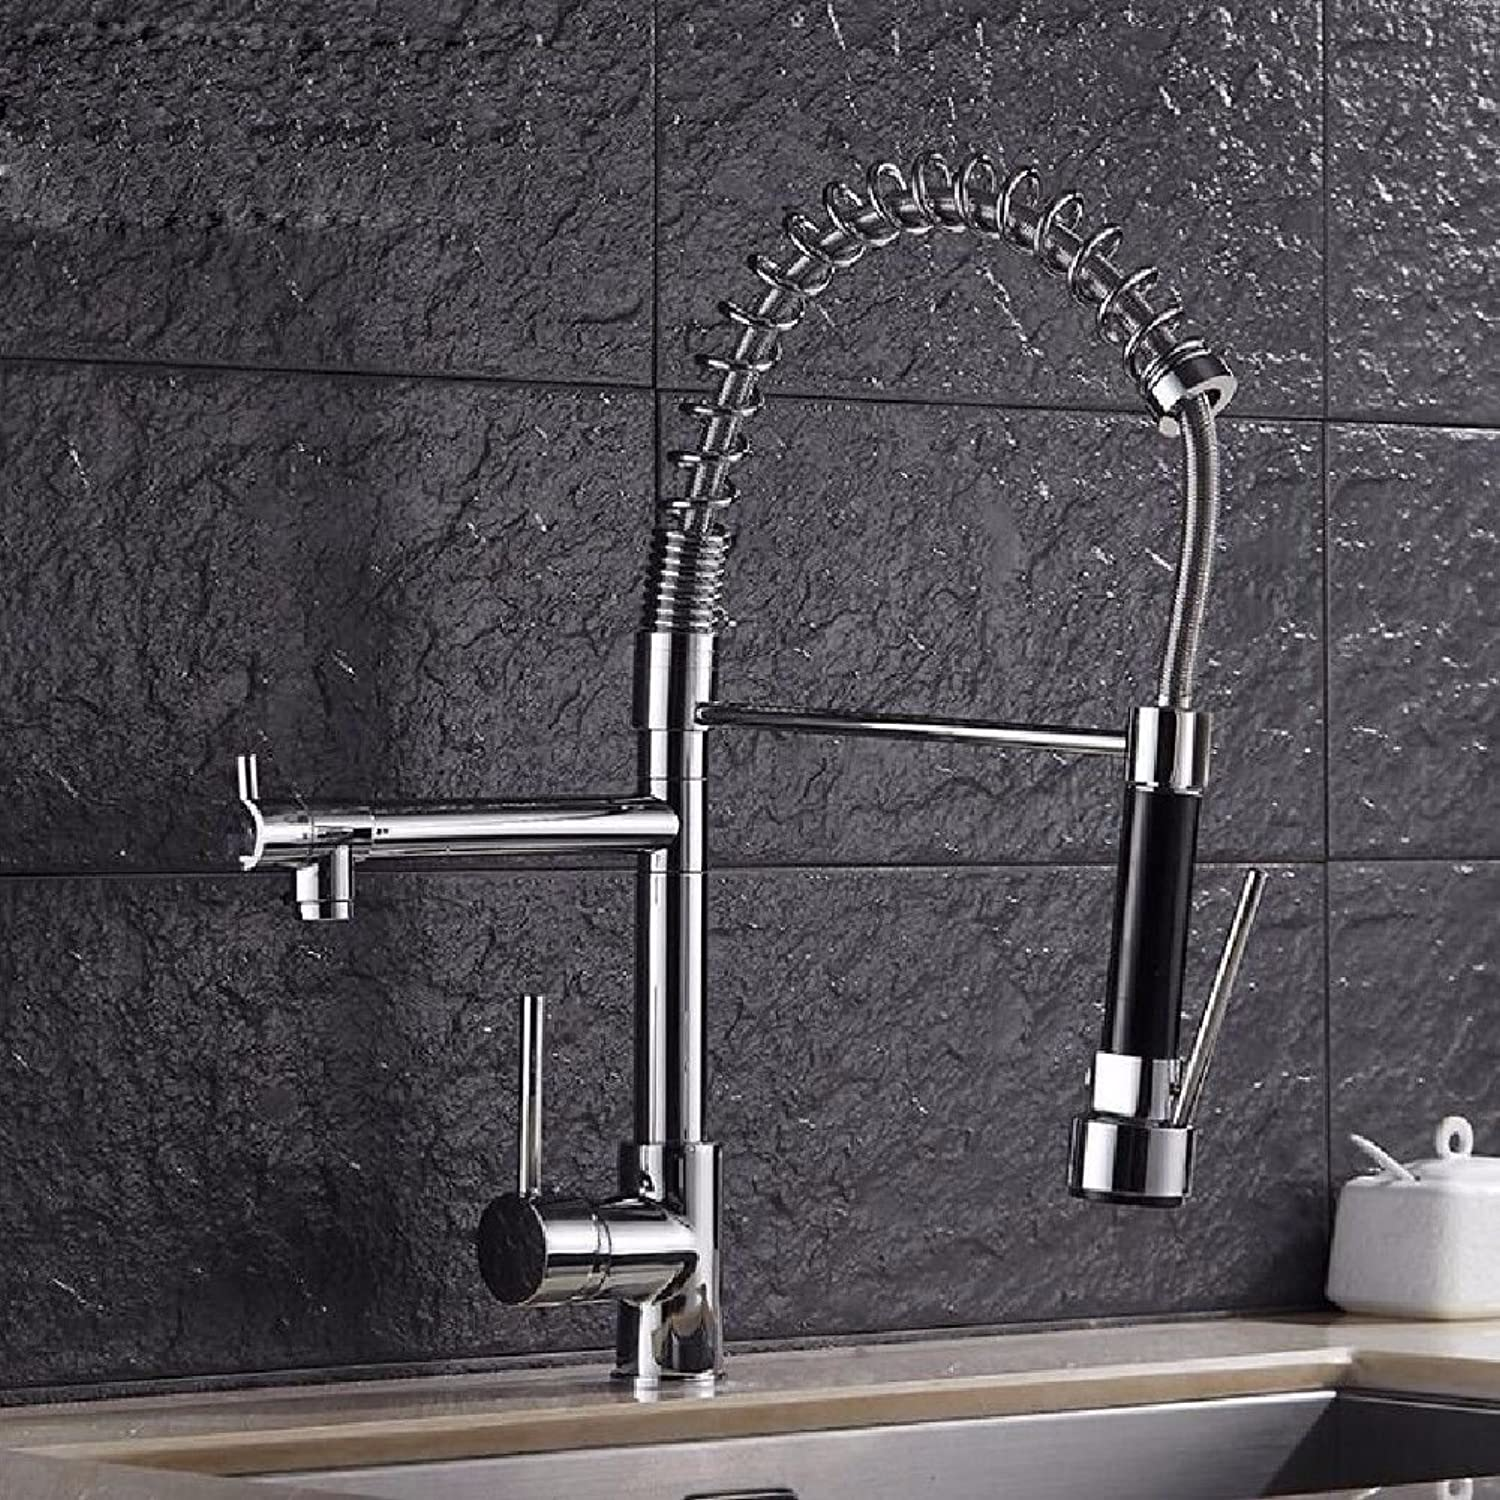 Lalaky Taps Faucet Kitchen Mixer Sink Waterfall Bathroom Mixer Basin Mixer Tap for Kitchen Bathroom and Washroom Spring Pull-Out Telescopic Double-Outlet Hot and Cold